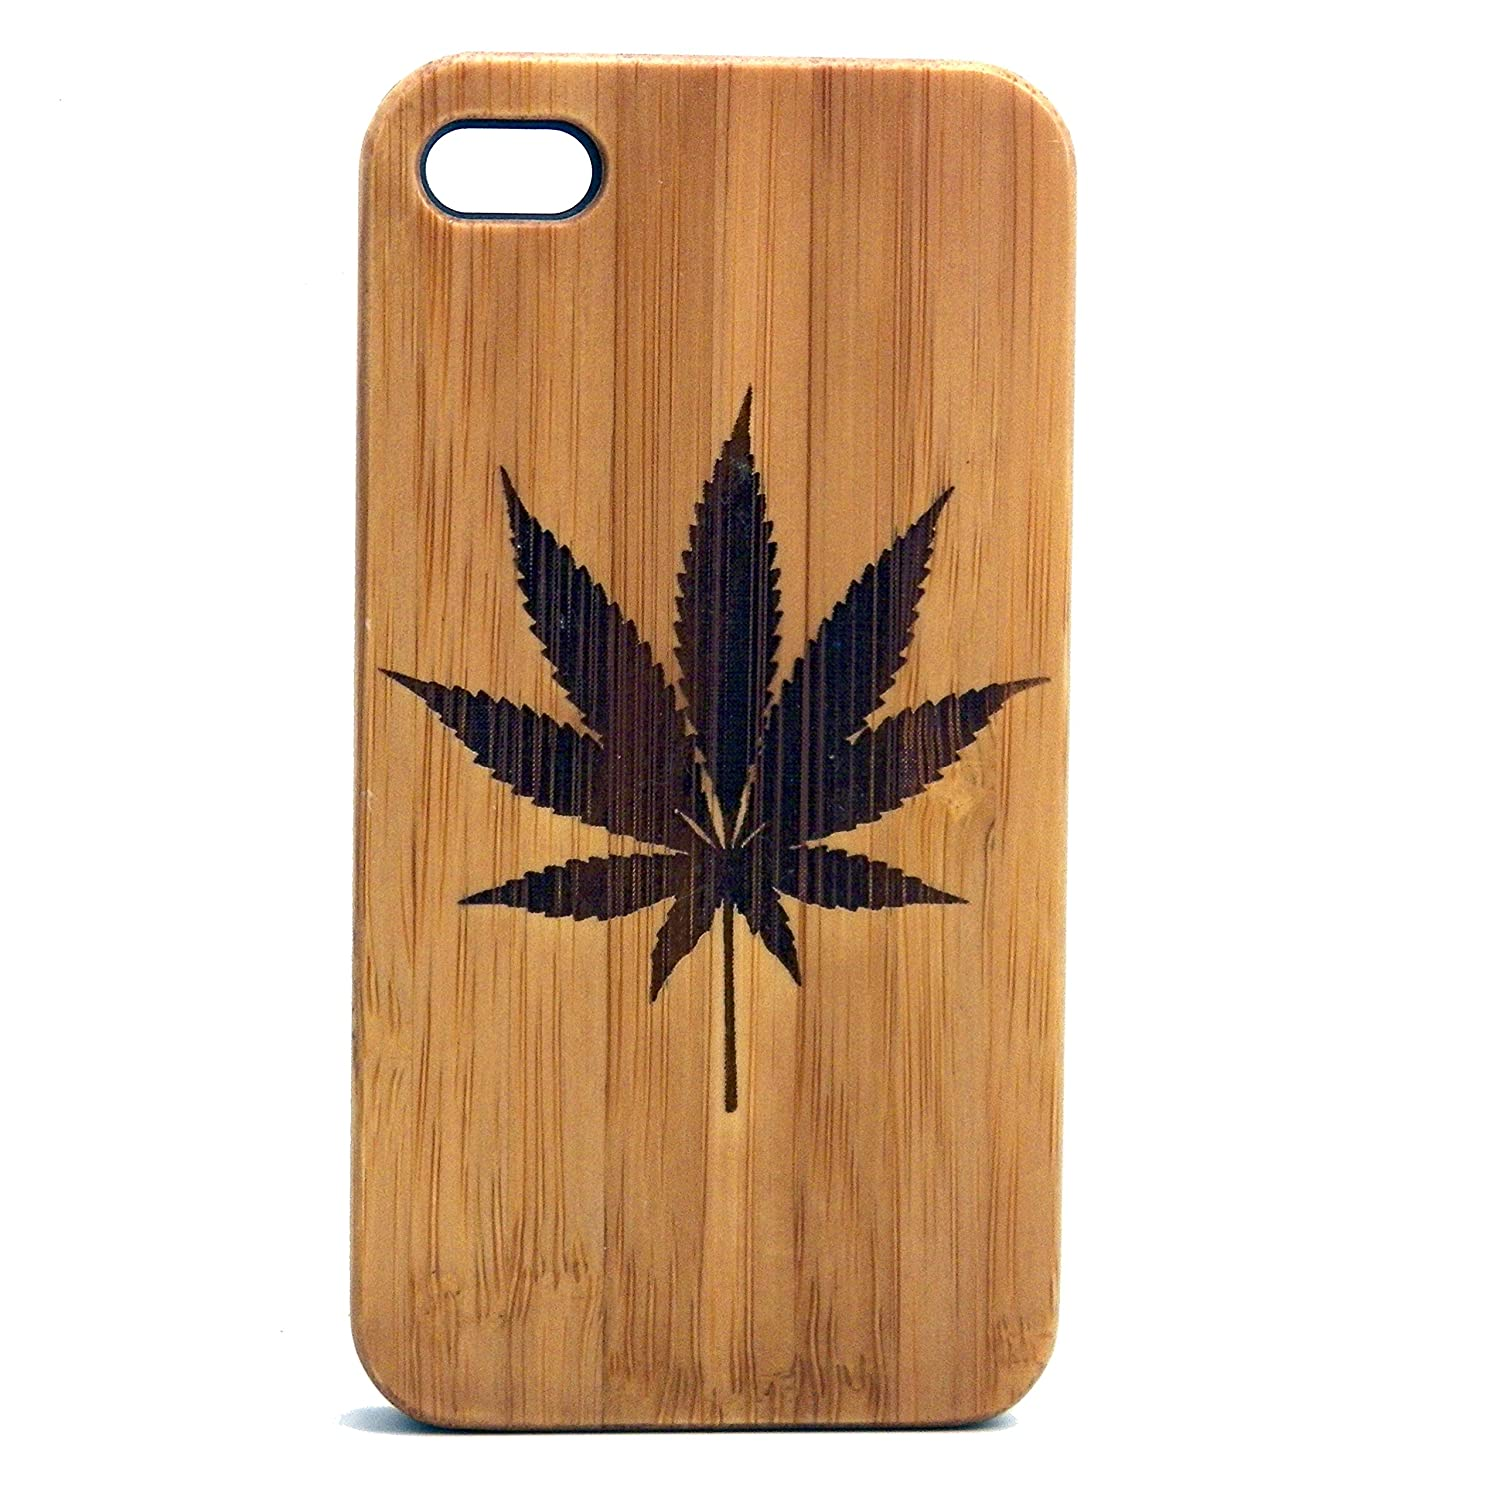 Marijuana Leaf iPhone 6 Case. Eco-Friendly Bamboo Wood Cover. 420 Pot Weed MJ. Legalize It. Cannabis Smoke Get High.